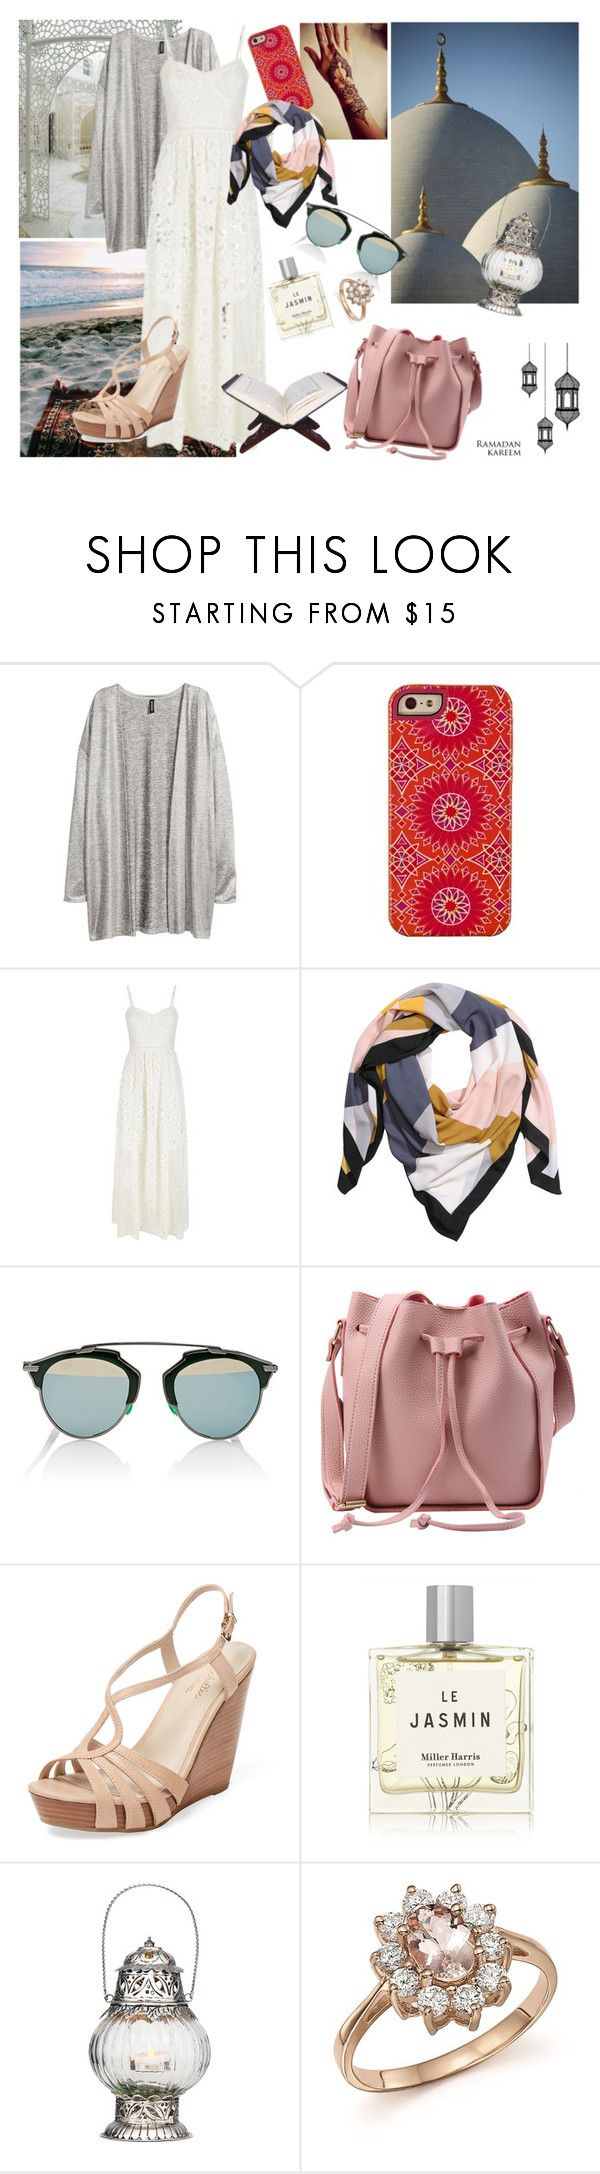 """ramadan/hijeb night 27**...laylat al qadr"" by rosesophiawalker ❤ liked on Polyvore featuring Hai, H&M, Juicy Couture, Christian Dior, Seychelles, Miller Harris, Cultural Intrigue and Bloomingdale's"